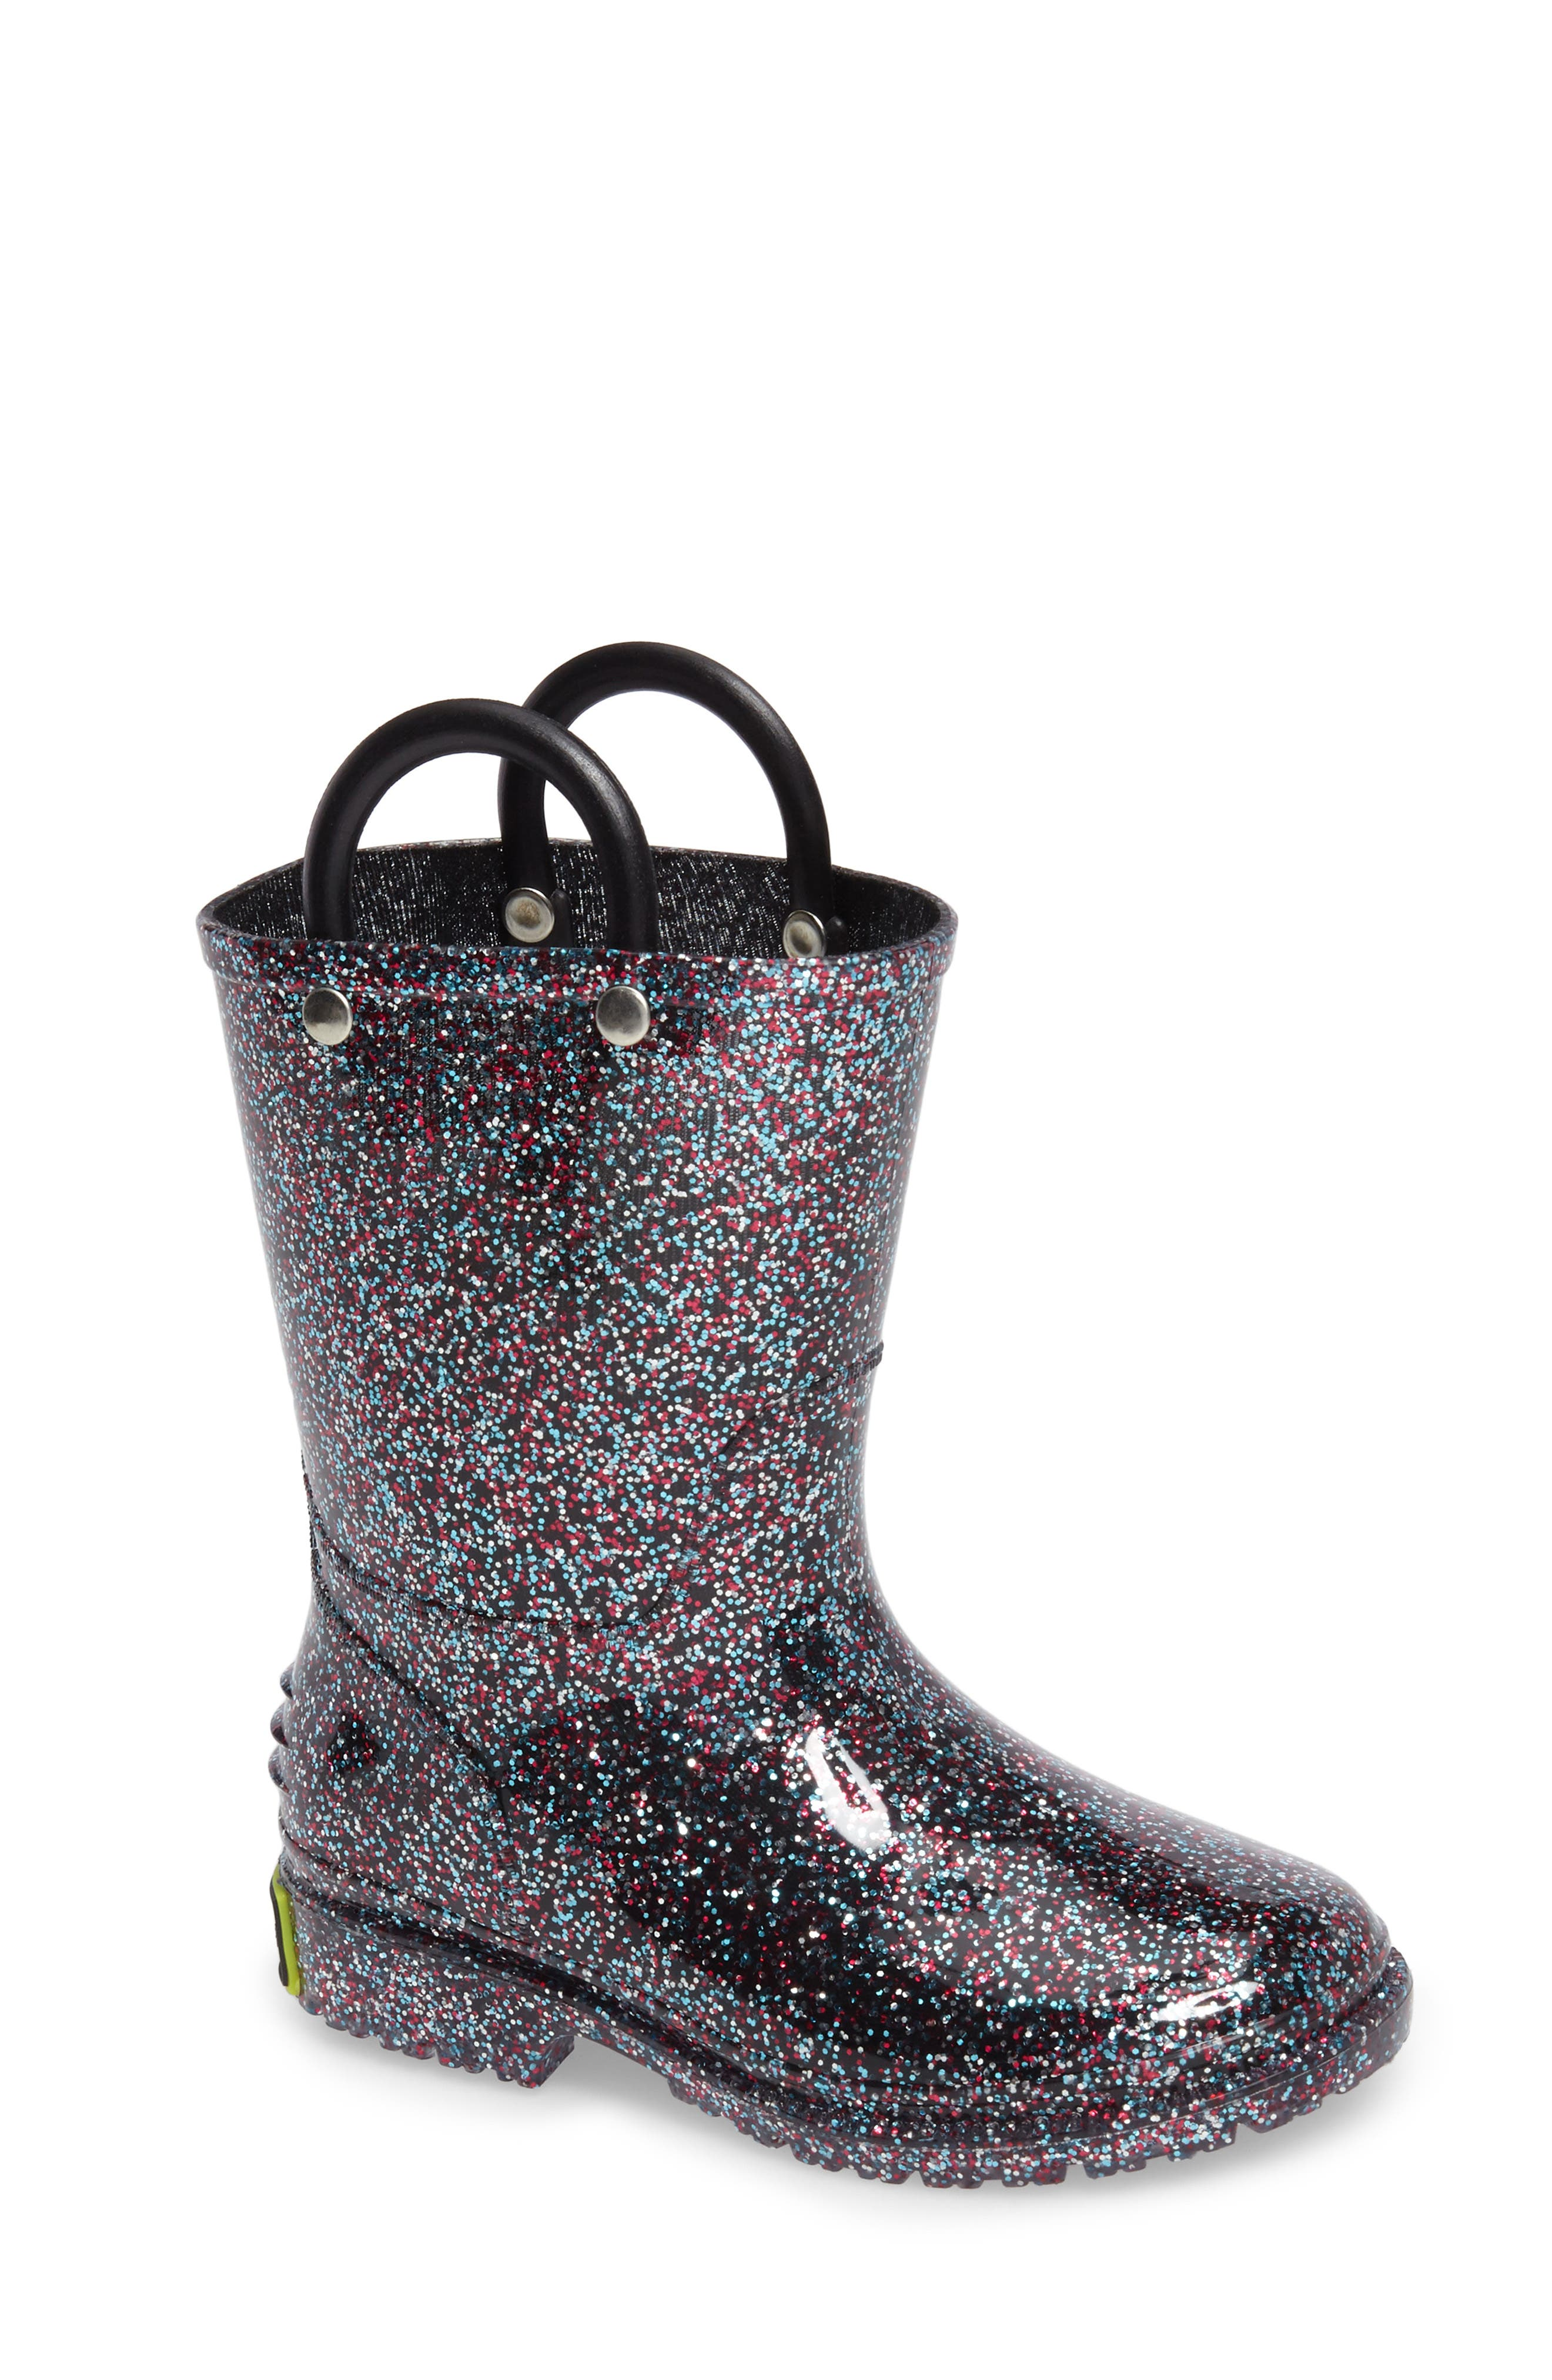 WESTERN CHIEF,                             Glitter Waterproof Rain Boot,                             Main thumbnail 1, color,                             MULTI